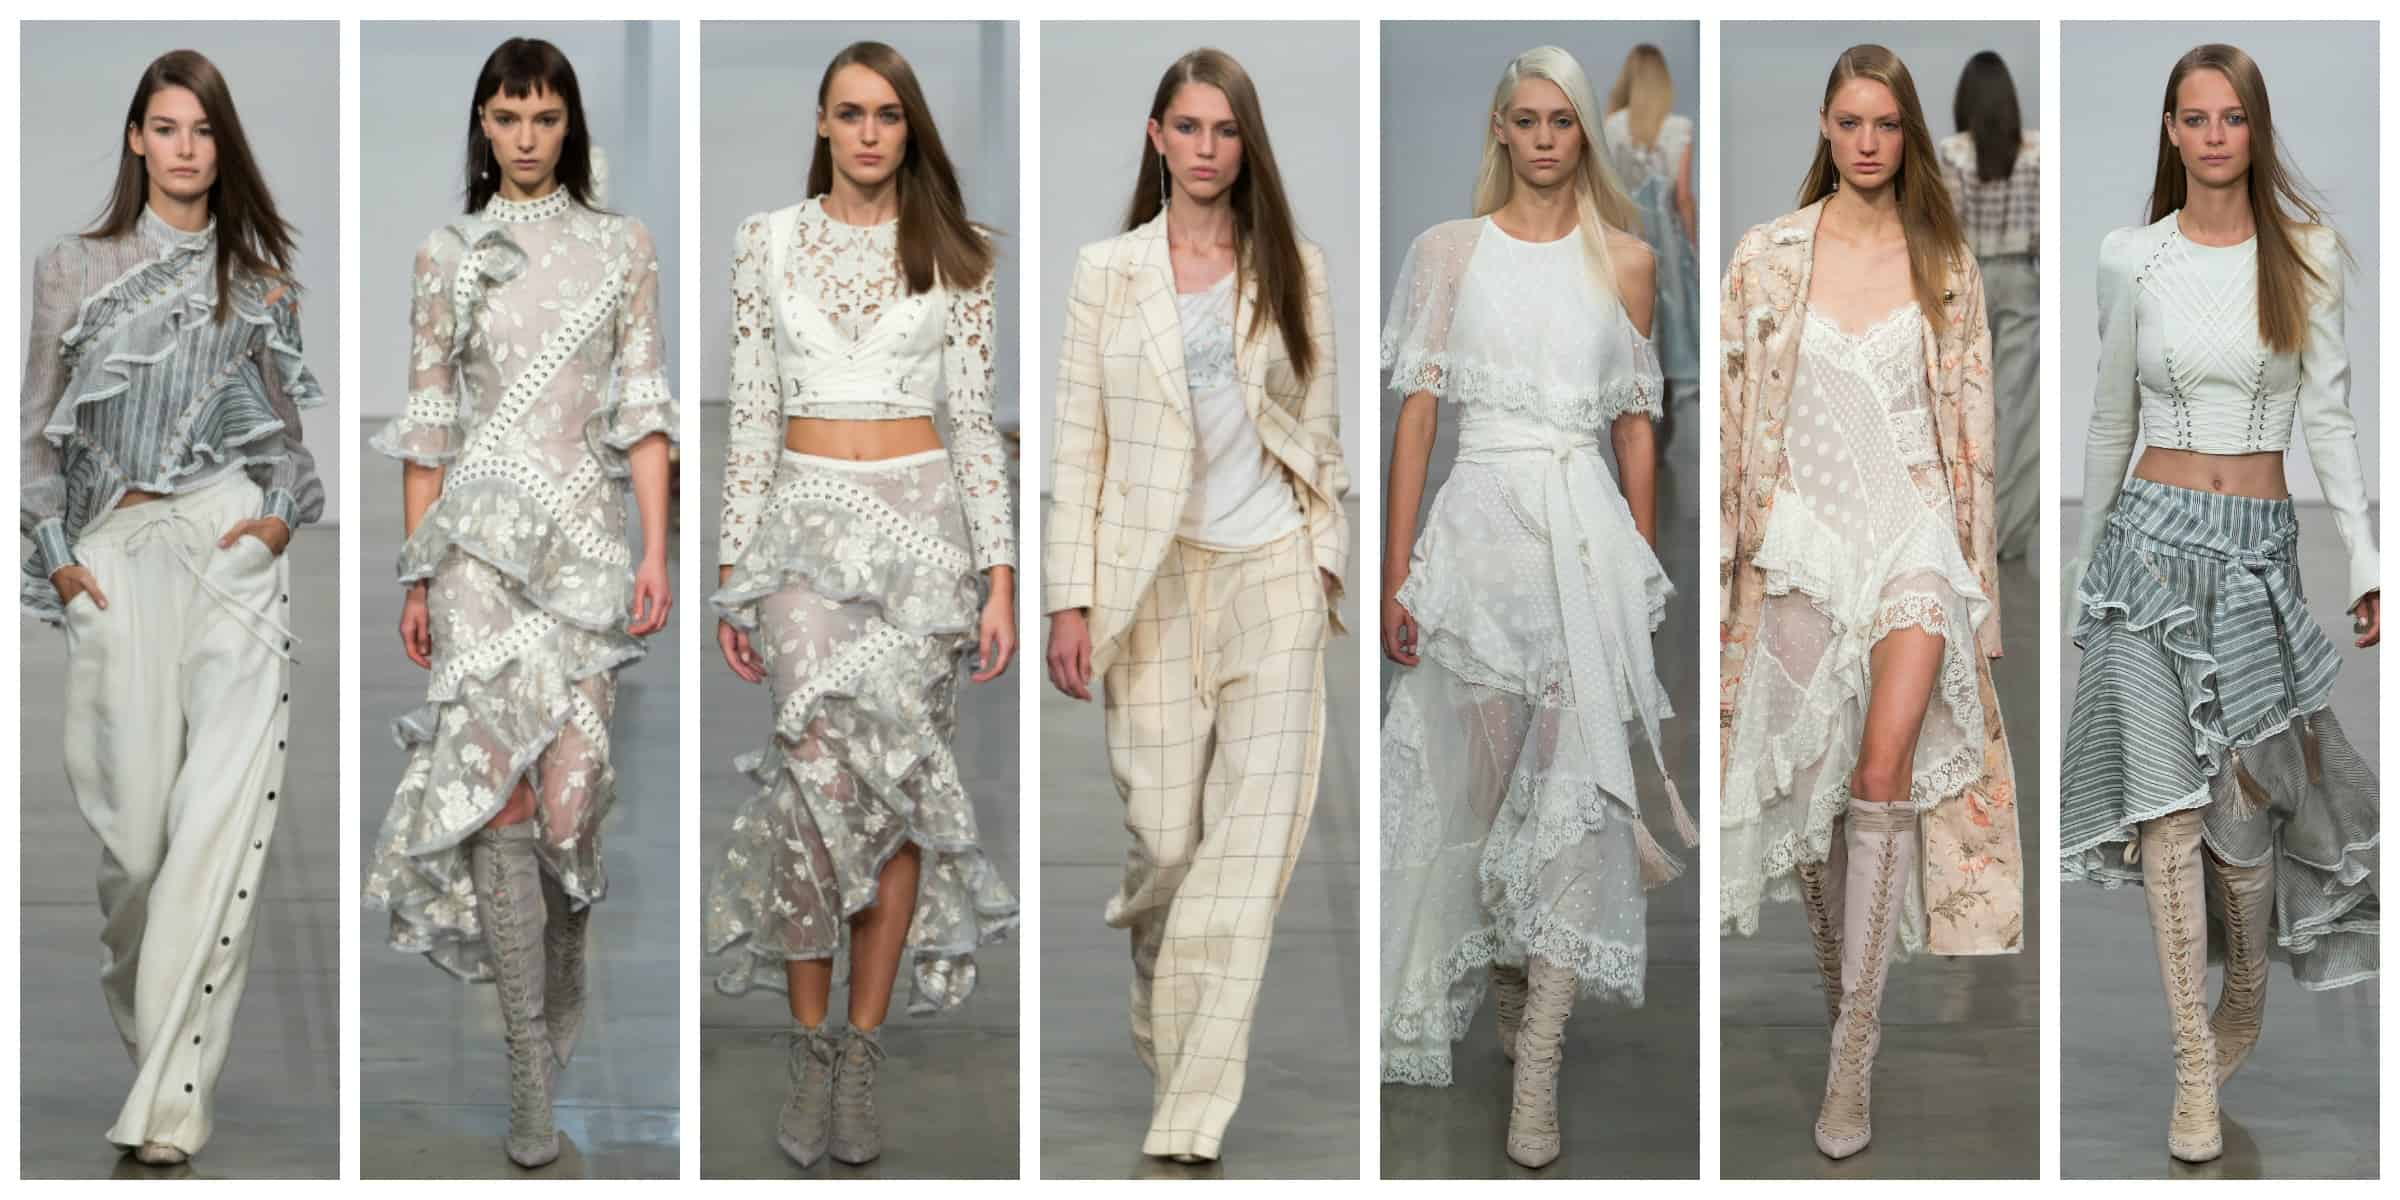 New York Fashion Week Spring 2017 - Zimmerman